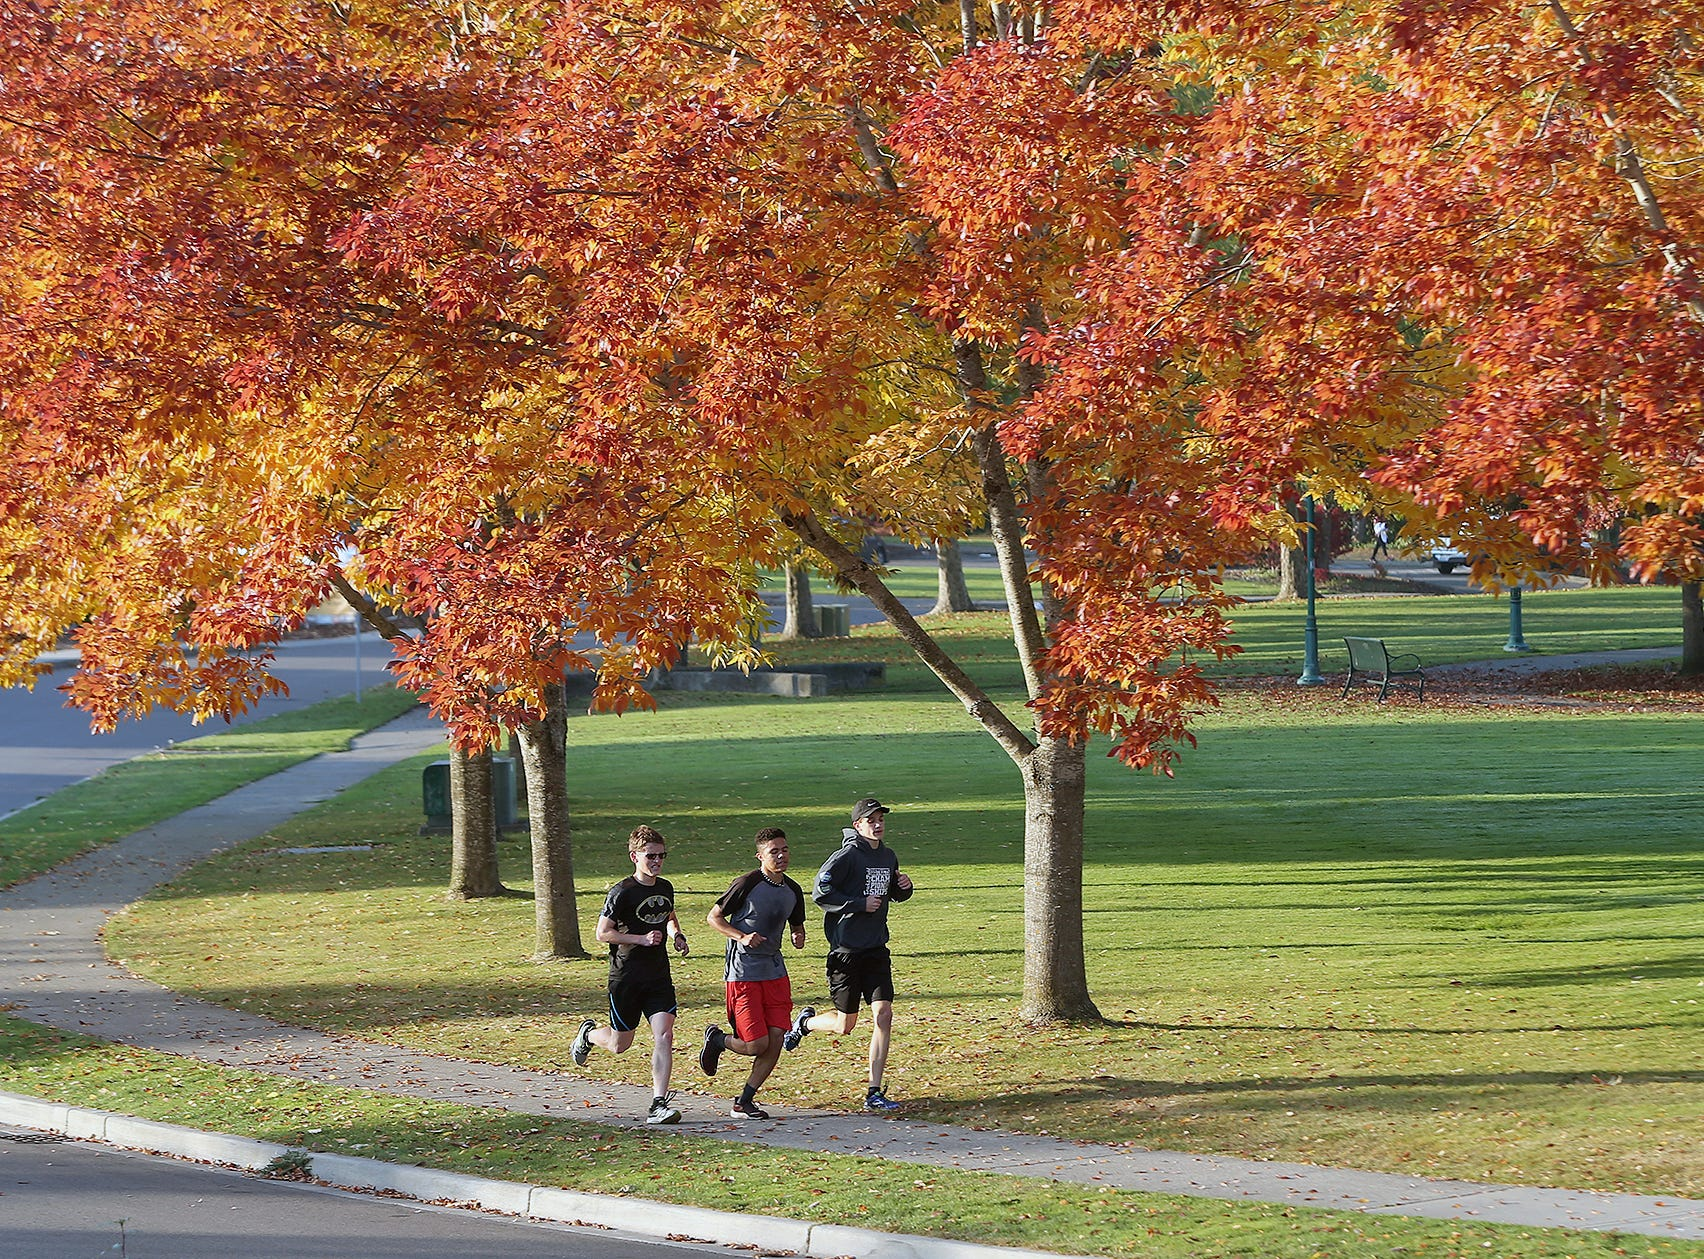 Members of the Olympic College men's cross-county team run during practice at Evergreen Rotary Park in Bremerton on Monday, October 22, 2018. After the fog burned off the bright colors of fall appeared.